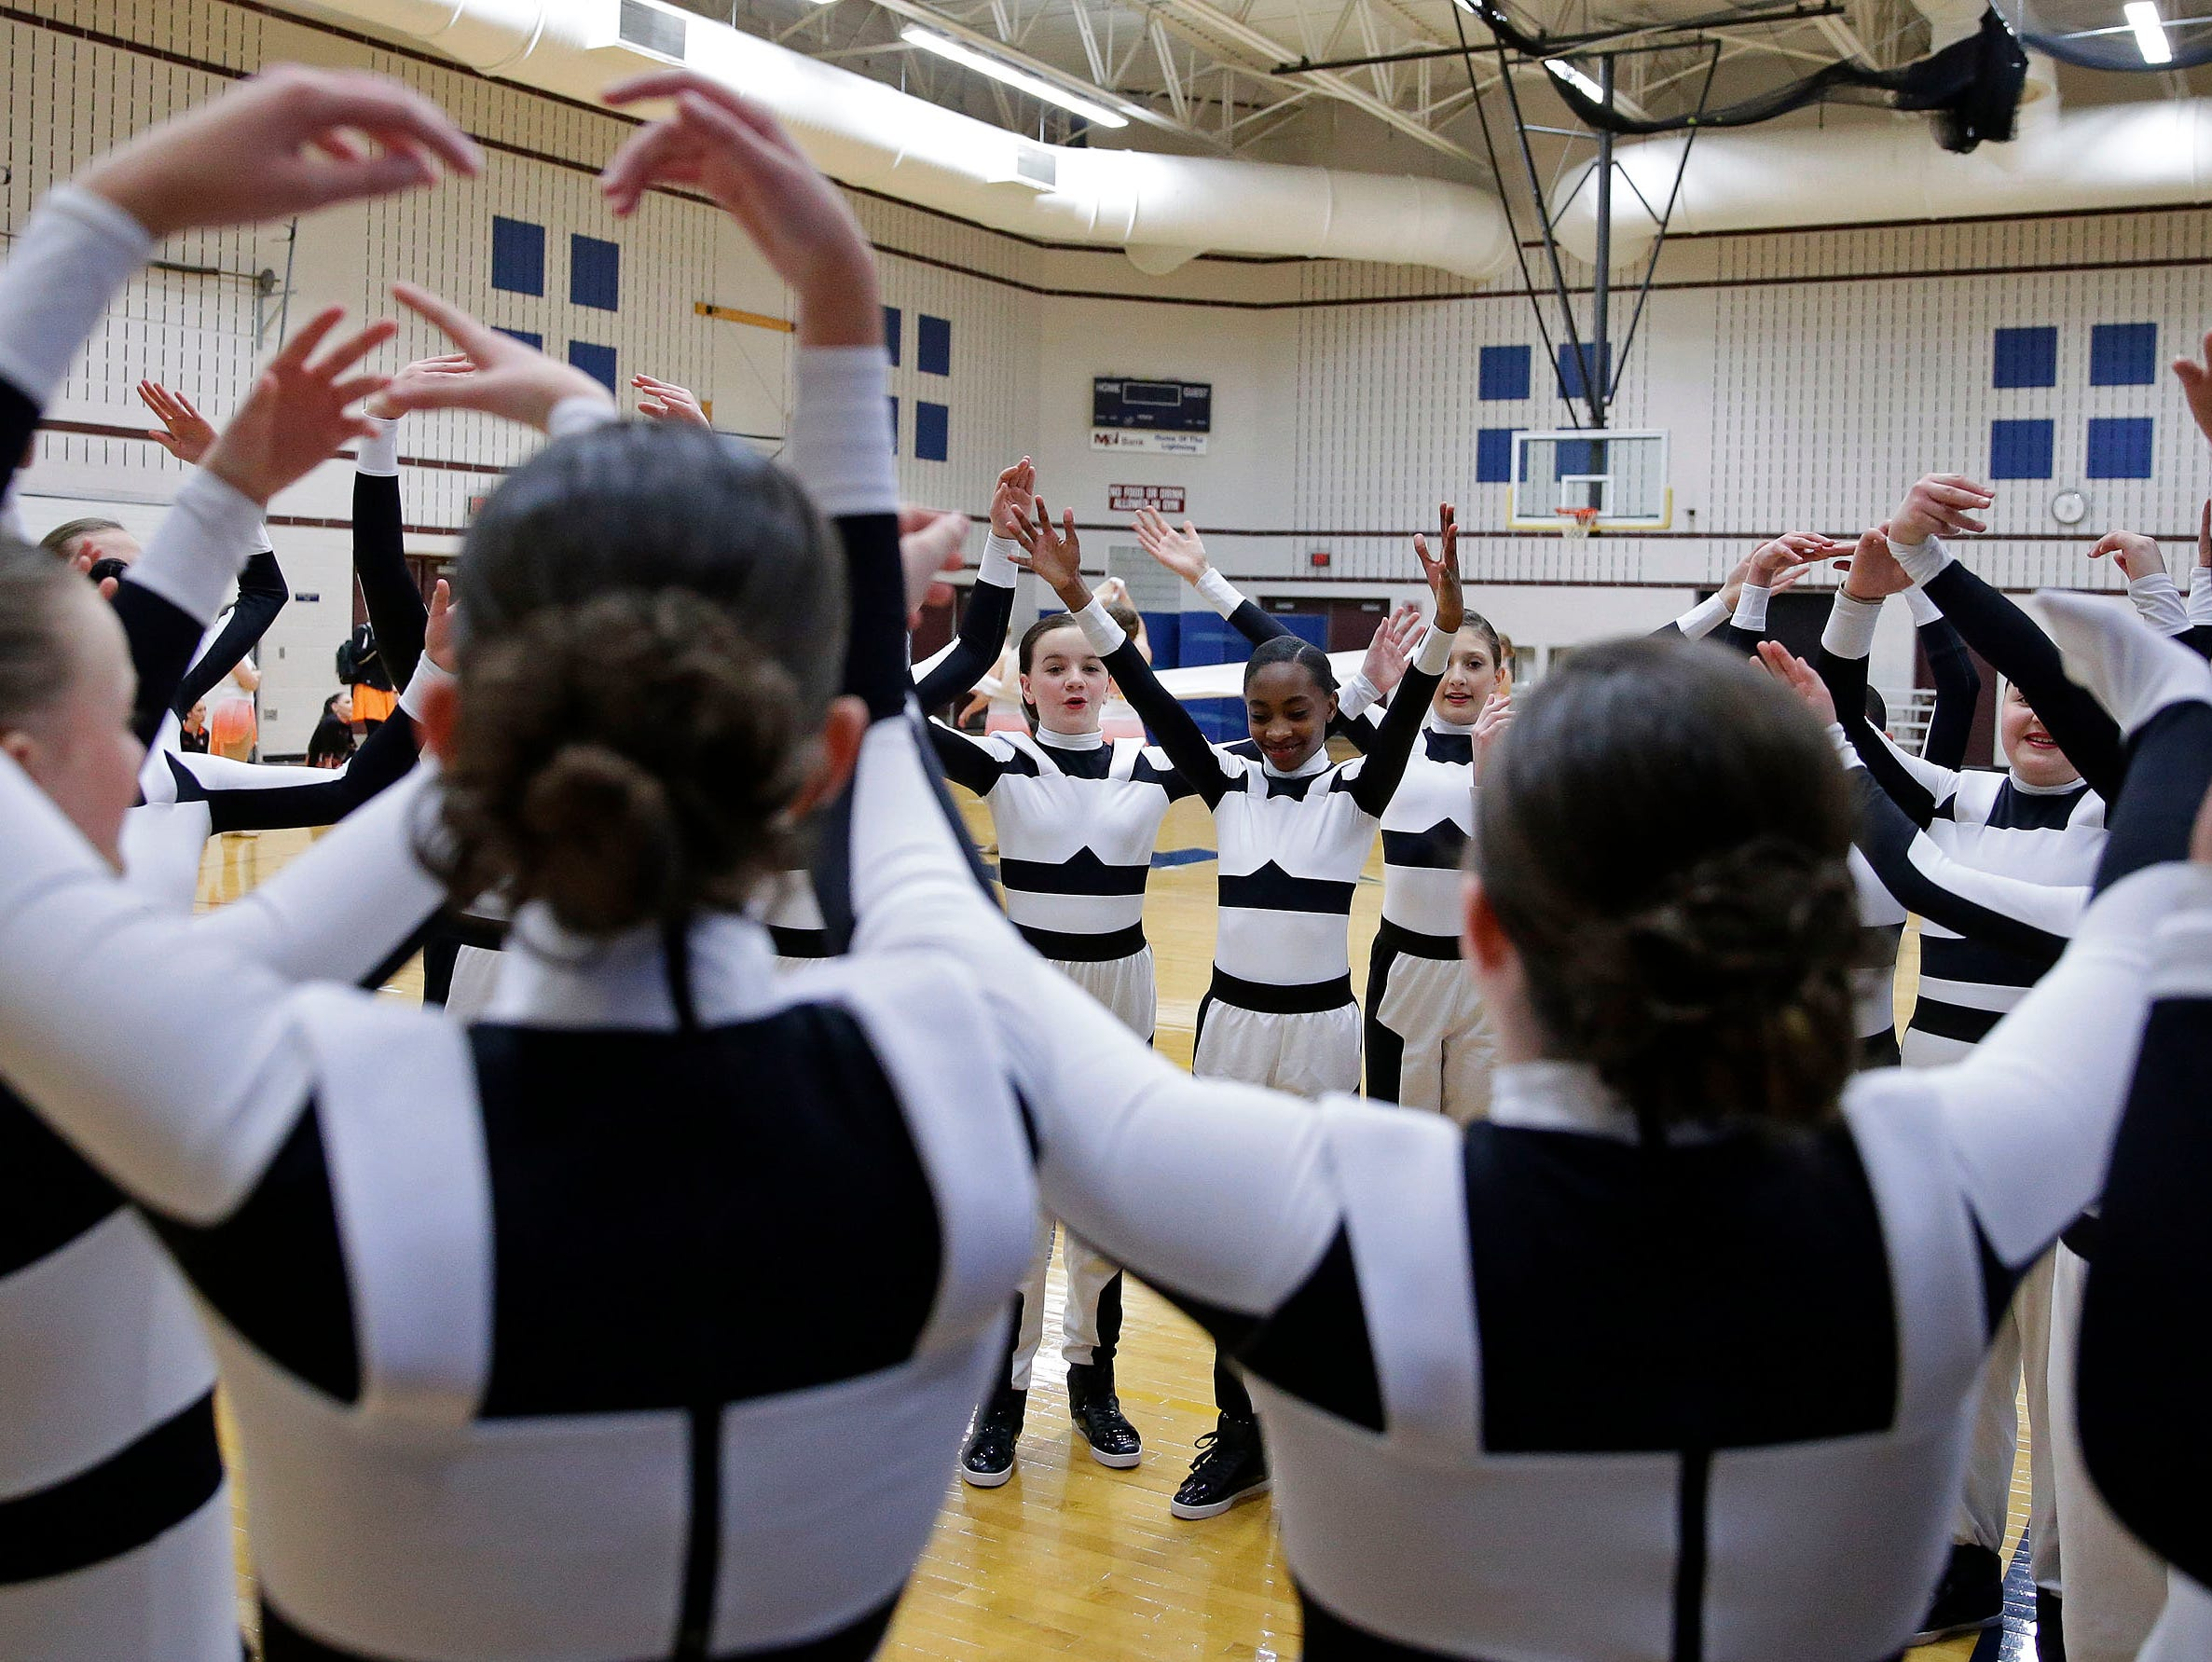 A team gets ready to compete as the Lightning Bolt Explosion Cheer and Dance competition takes place Saturday, January 5, 2019, at Appleton North High School in Appleton, Wis.